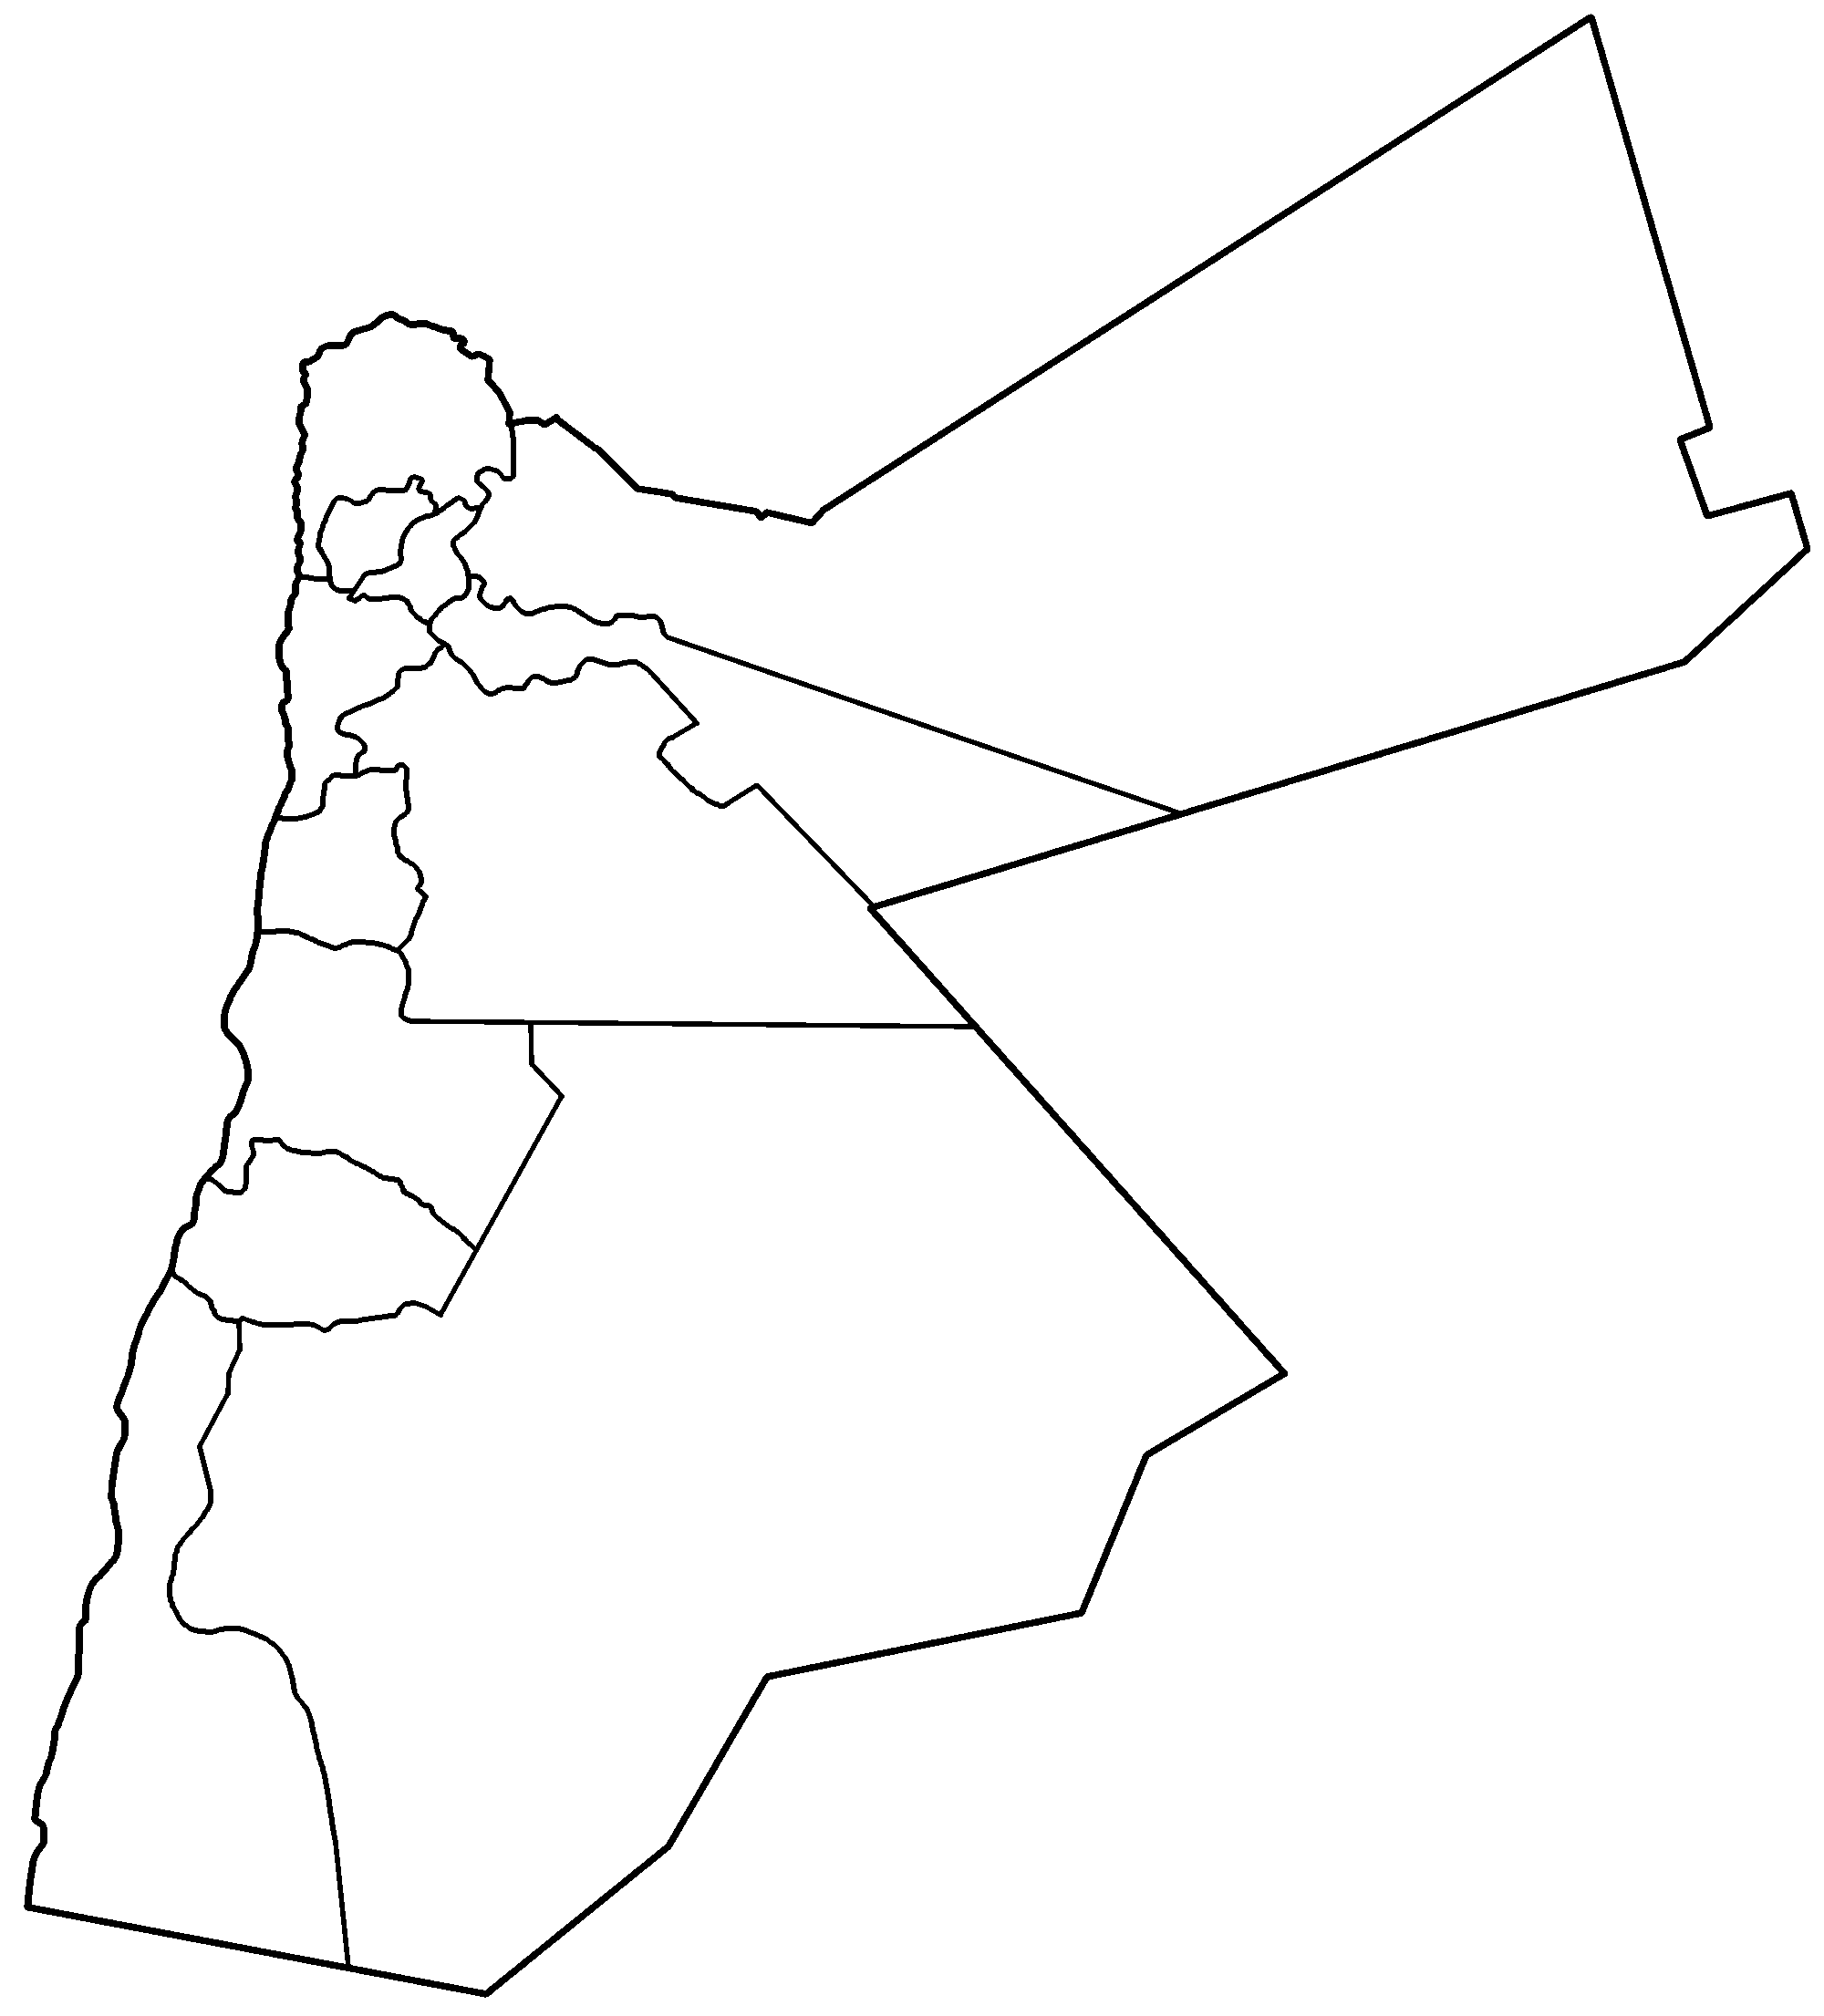 Jordan Governorates Blank - Jordan Map PNG